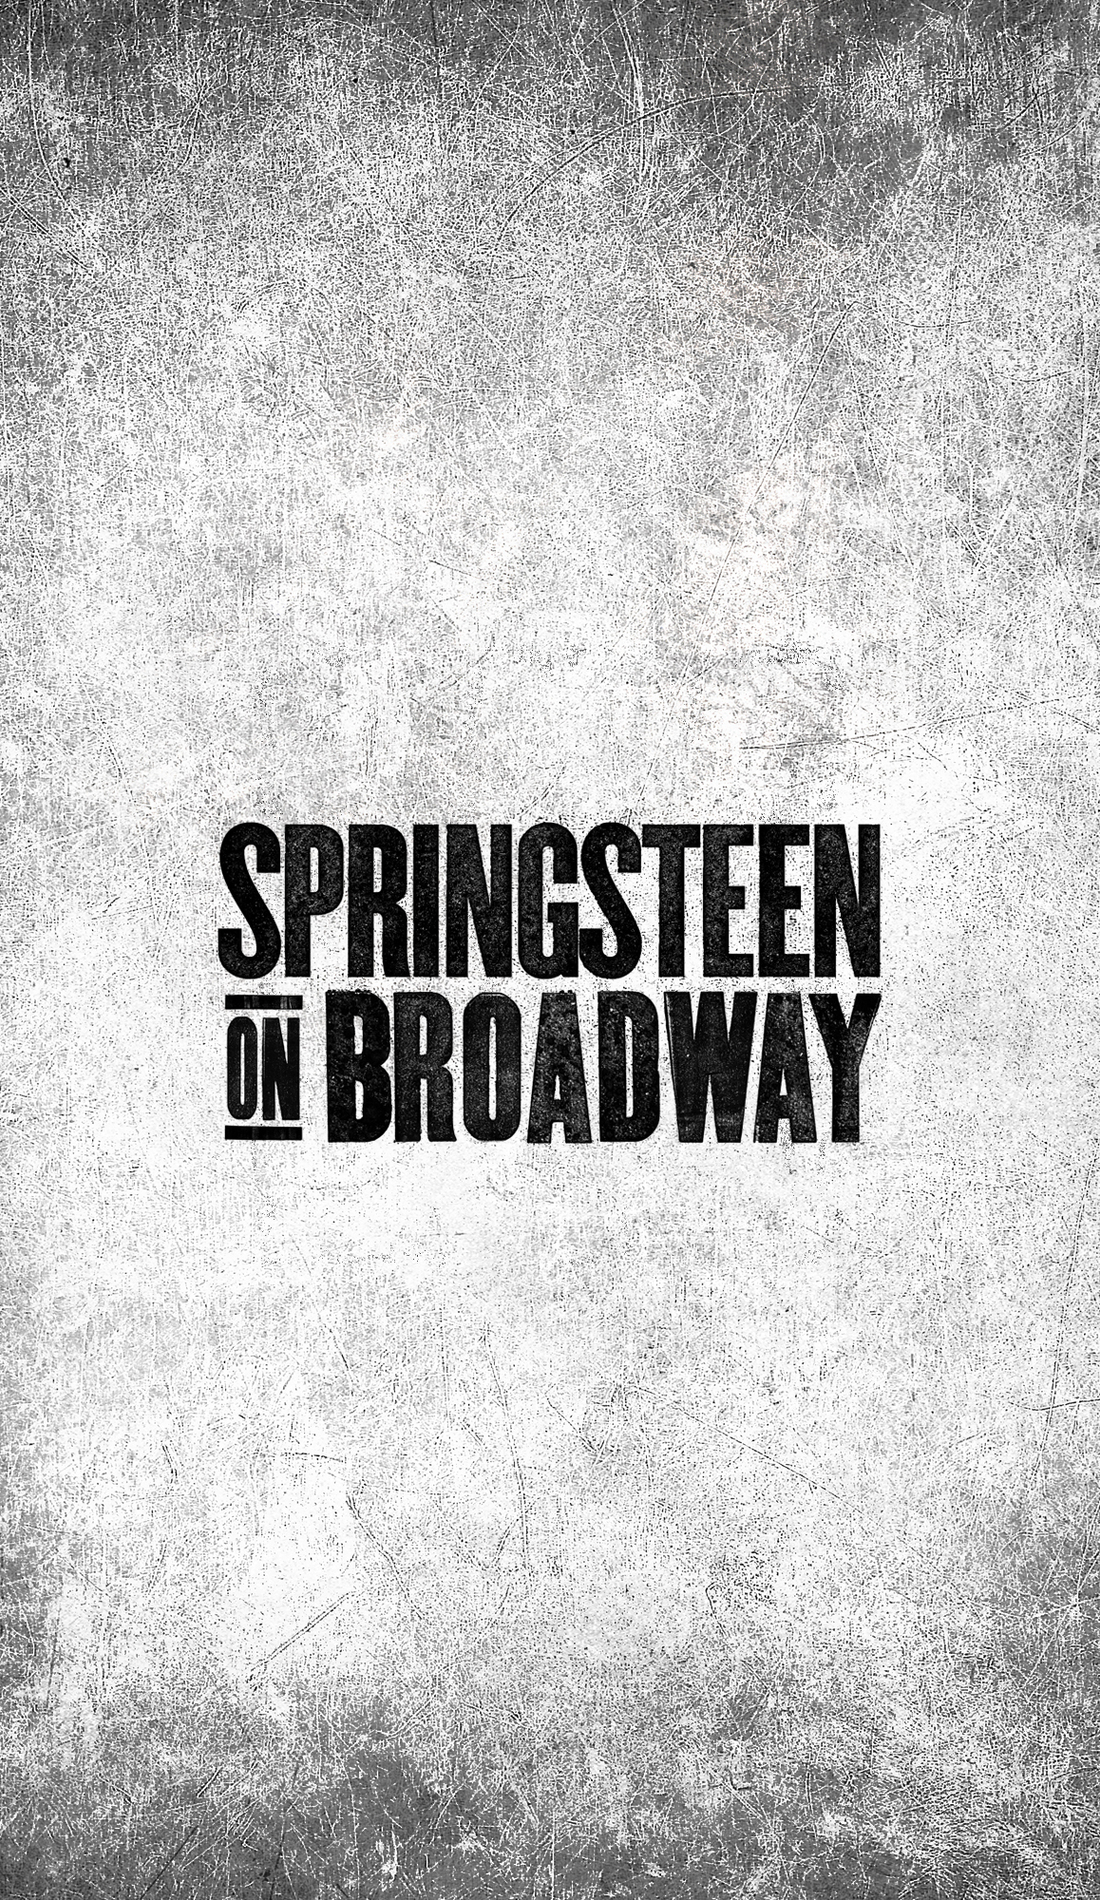 A Springsteen on Broadway live event